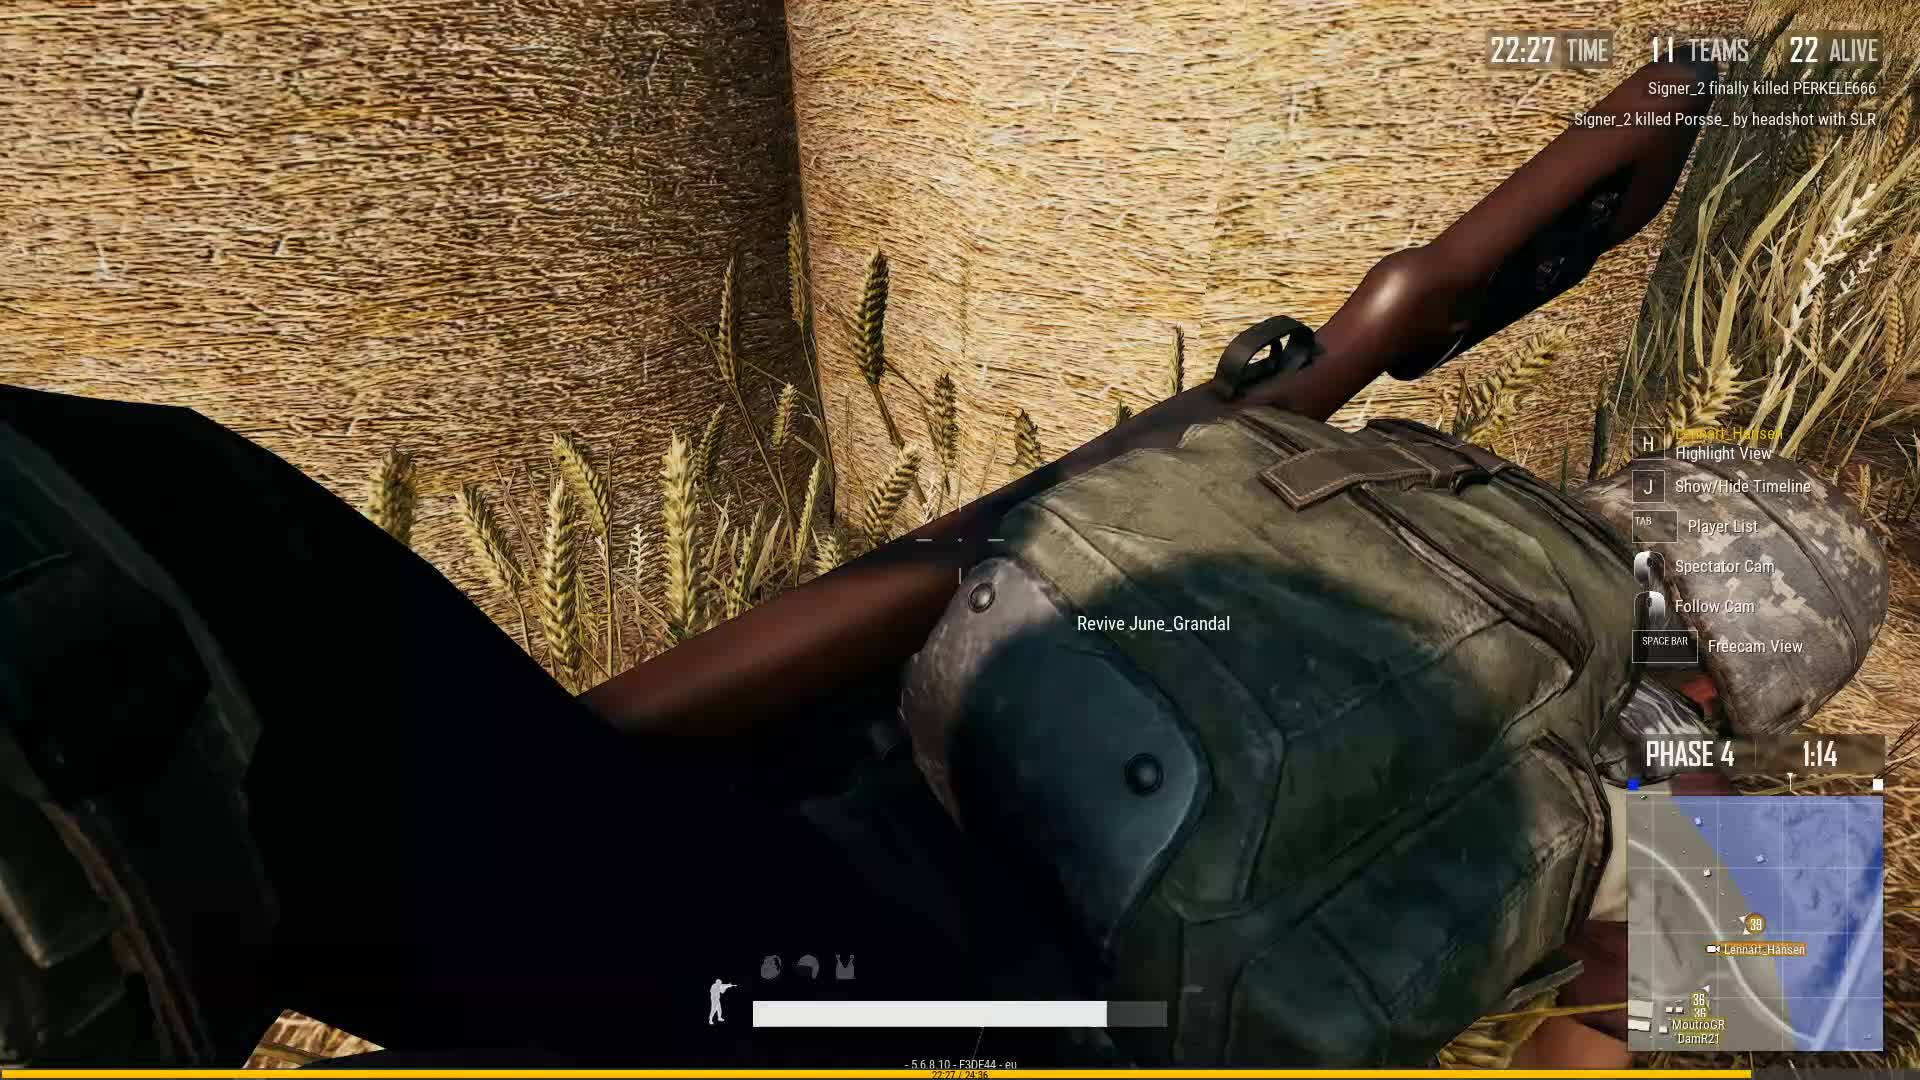 Death, Gaming, Gif Your Game, GifYourGame, Lennart_Hansen, PUBG, PUBattlegrounds, Lennart_Hansen killed themself GIFs